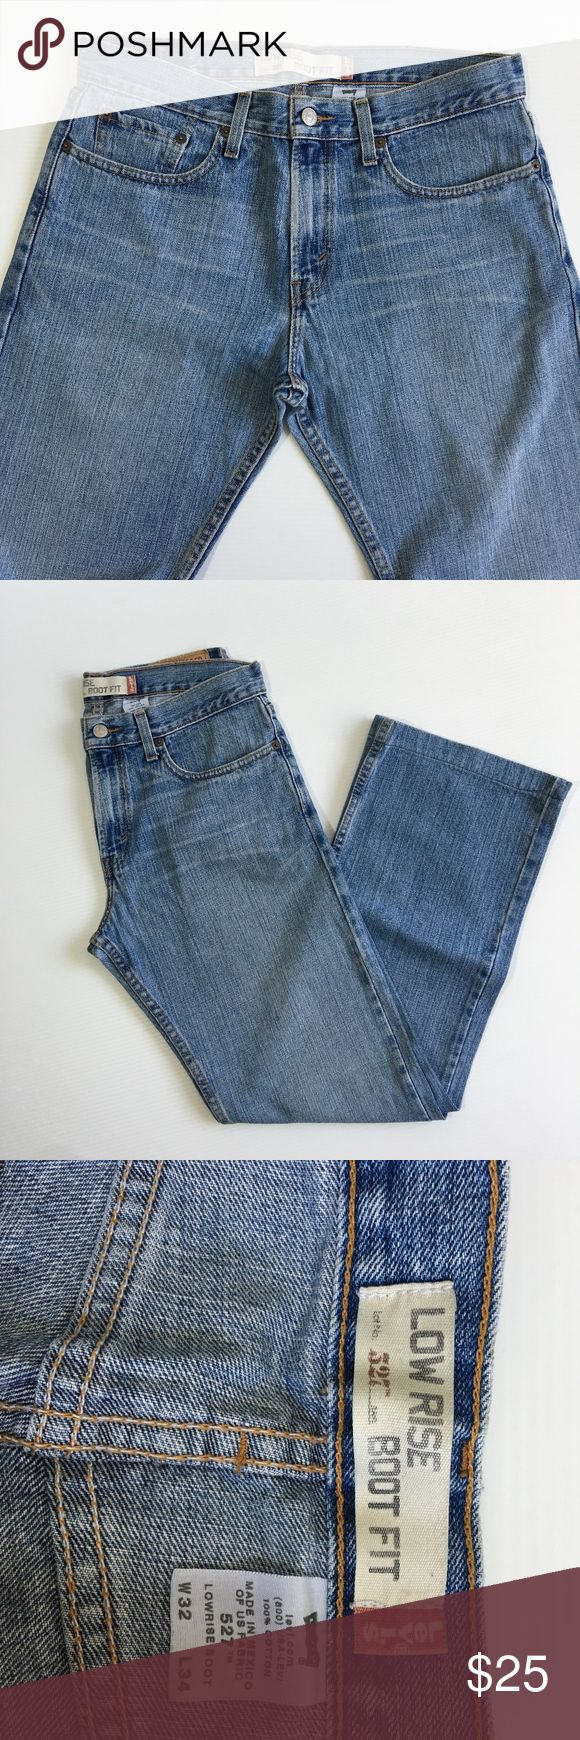 LEVIS 527 LOW RISE BOOT FIT BLUE JEAN SIZE 32 LEVIS 527  LOW RISE BOOT FIT  BLUE JEAN  SIZE 32X34 THE LENGHT HAS BEEN PROFESSIONALLY HAND CRAFTED TO 32 INCHES (HEM), SO IT IS 32x32 DESPITE THE LABEL SAYS 32x34. Levi's Jeans Bootcut